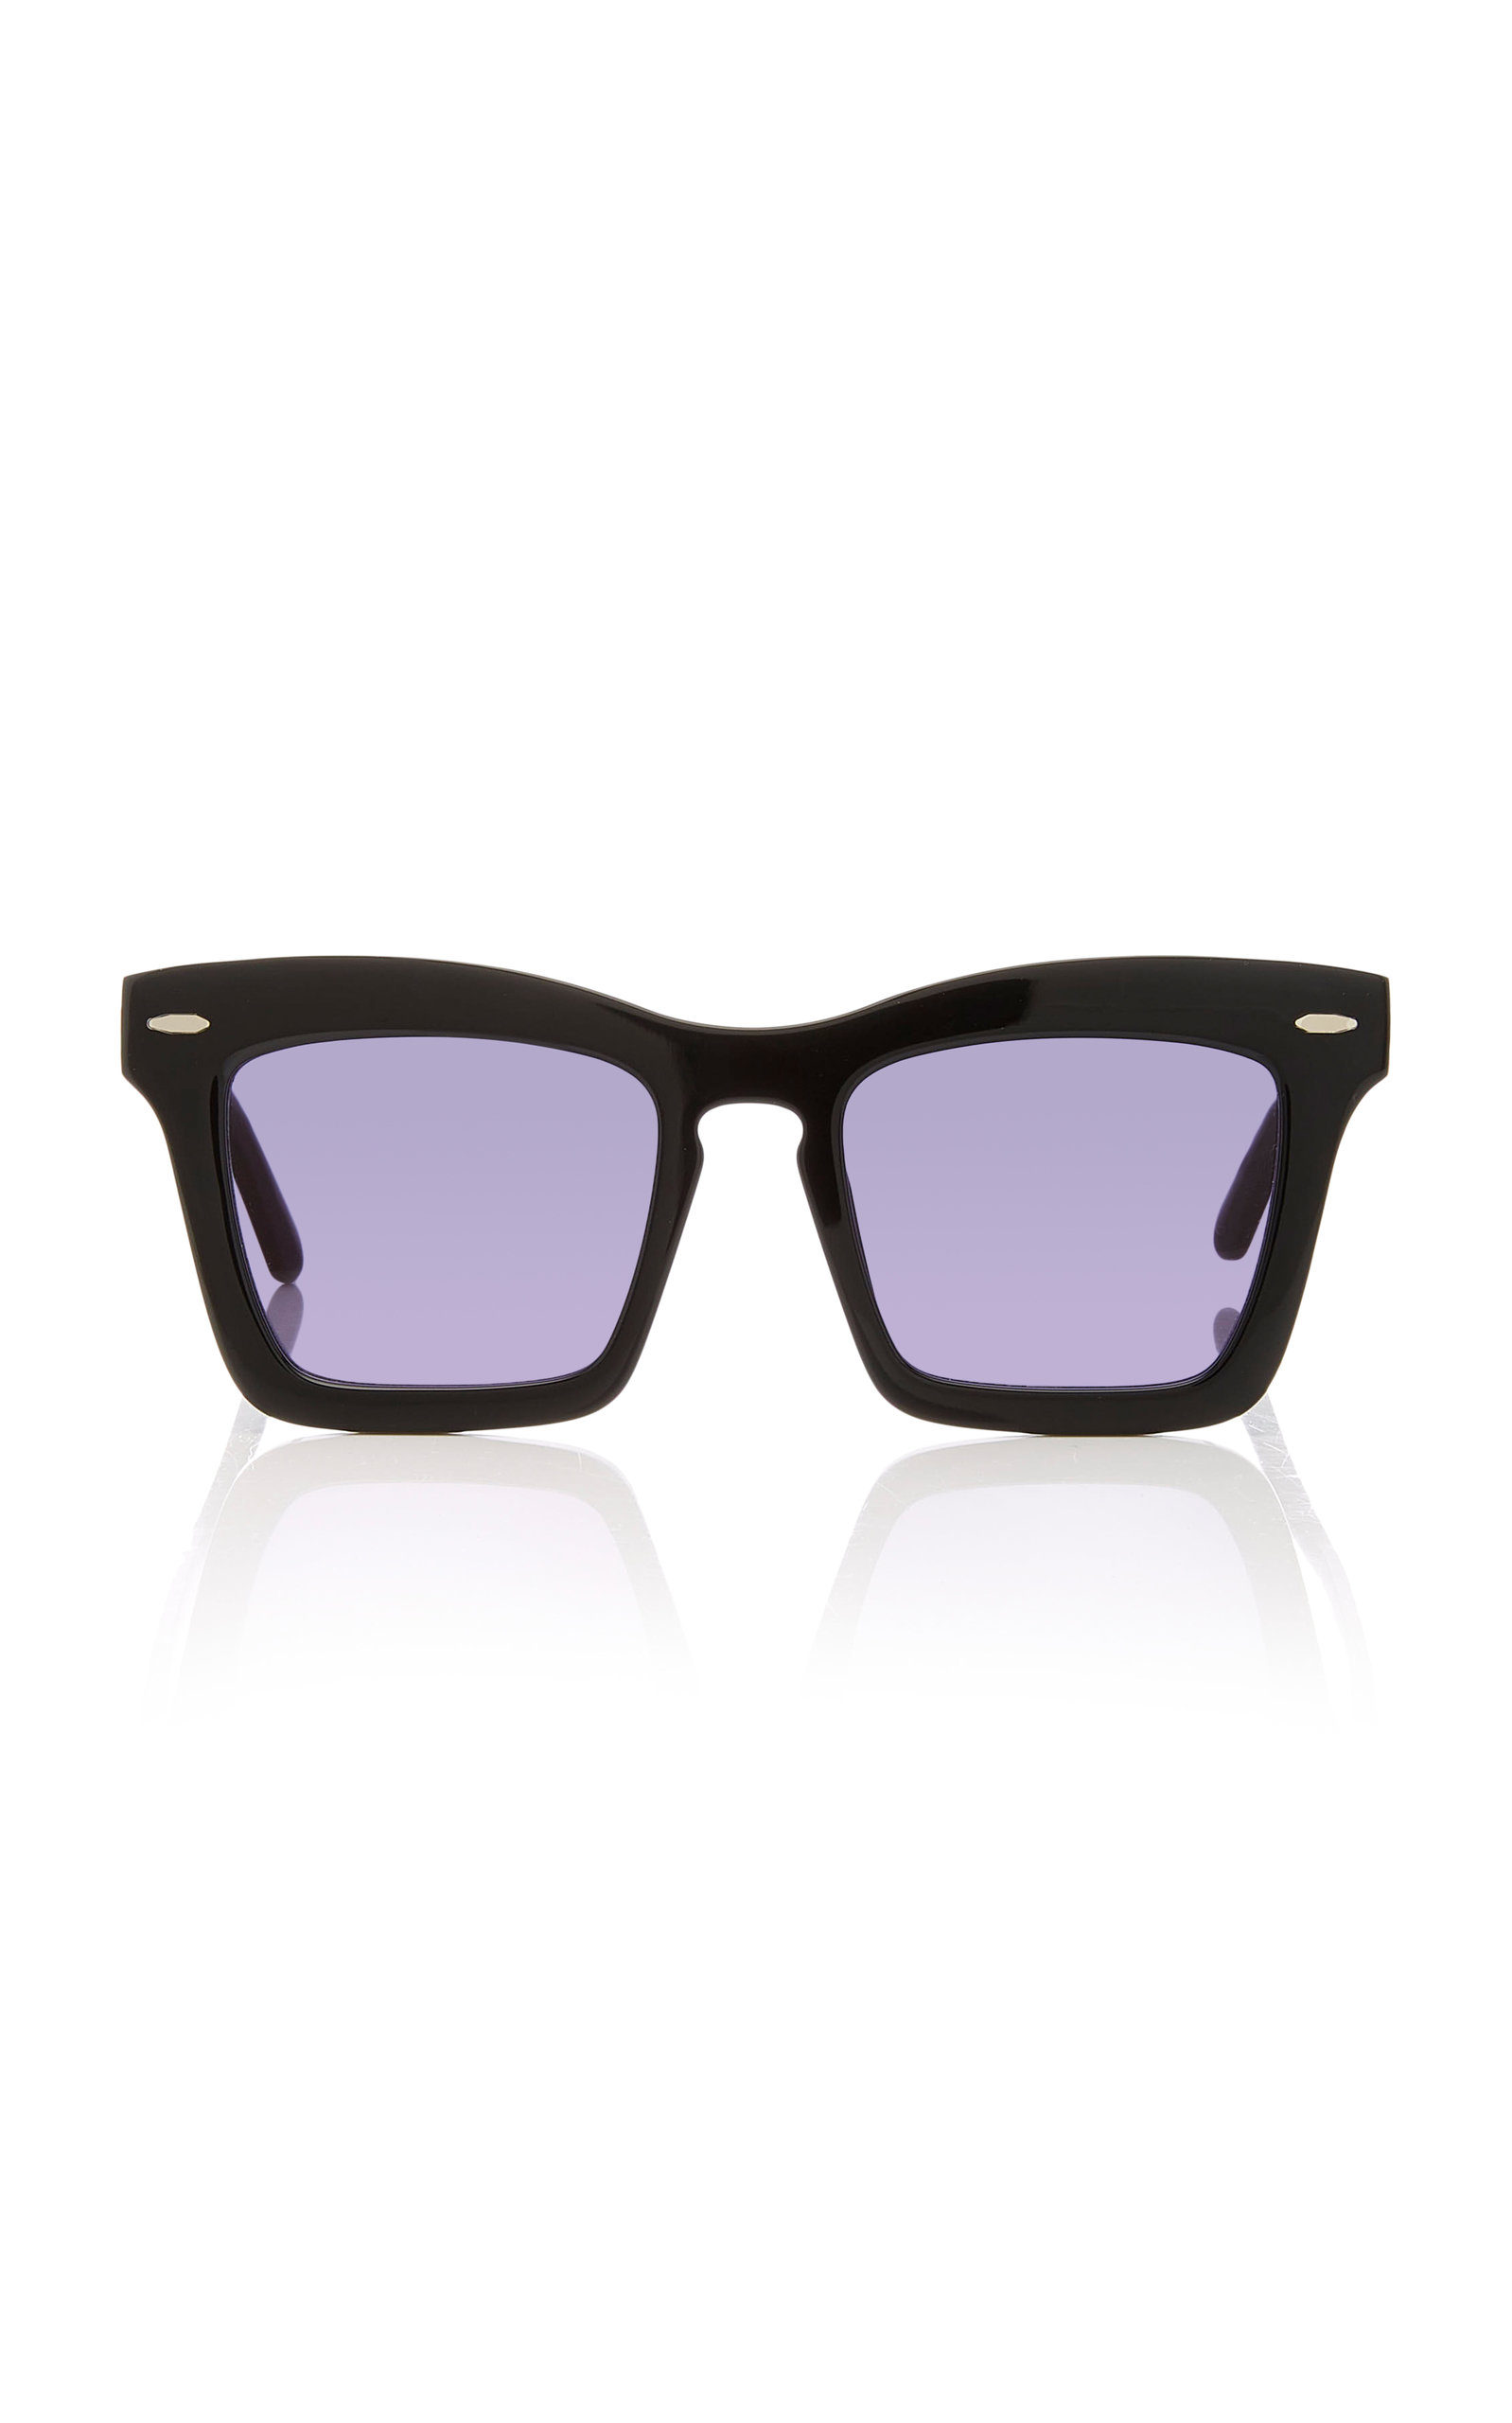 Banks squared-frame acetate sunglasses Karen Walker Eyewear